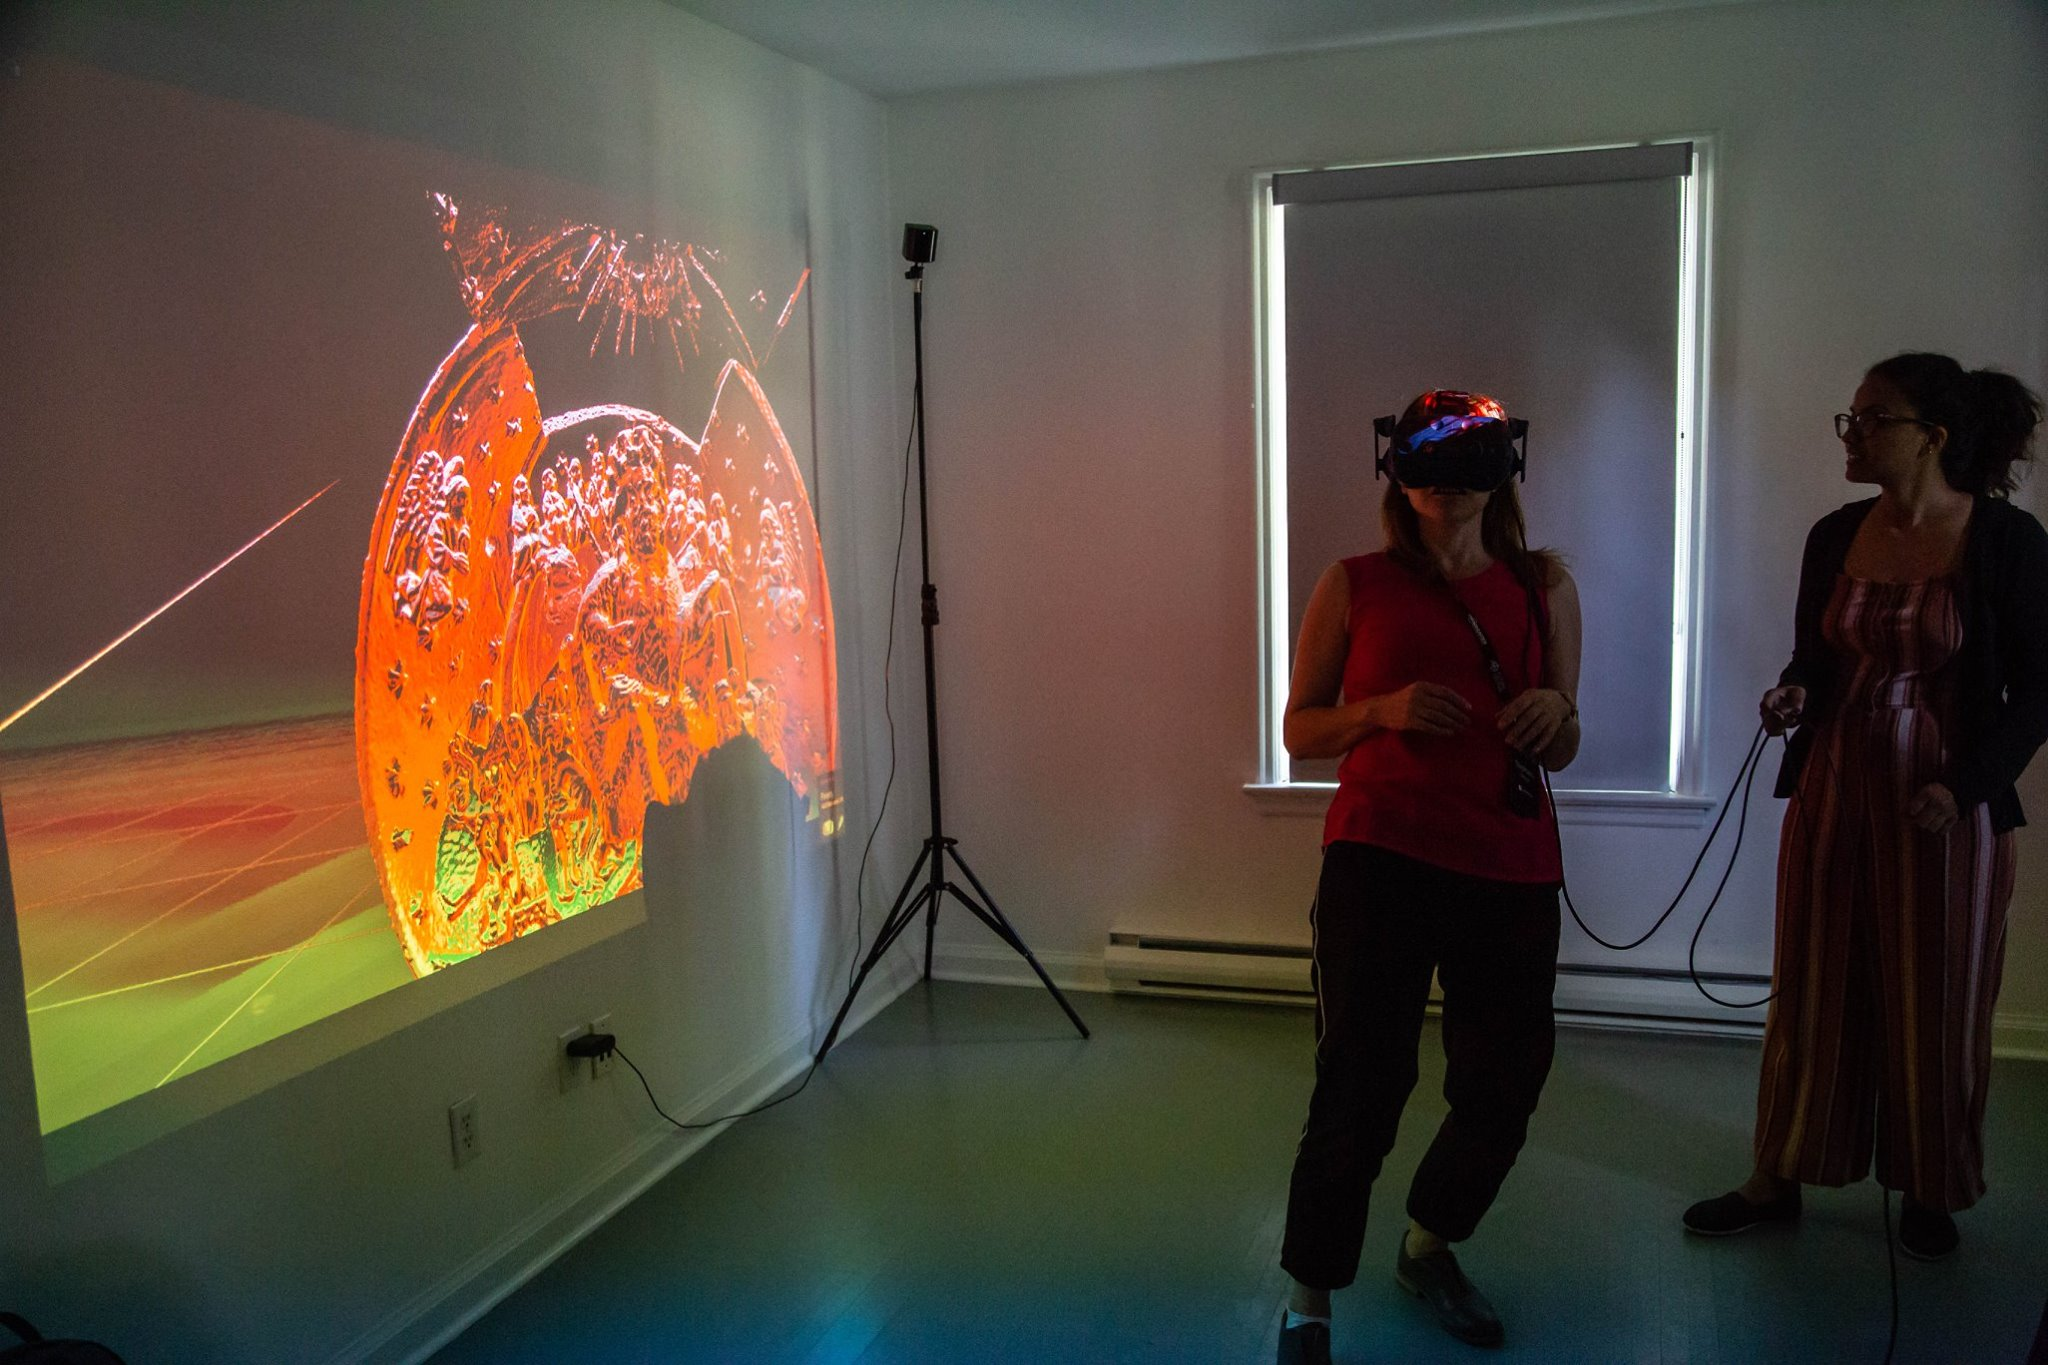 A woman wears a VR headset while another woman stands next to her and holds a wire connected to the headset. On the left is a projection displaying a 3D rendering of a gothic bead.